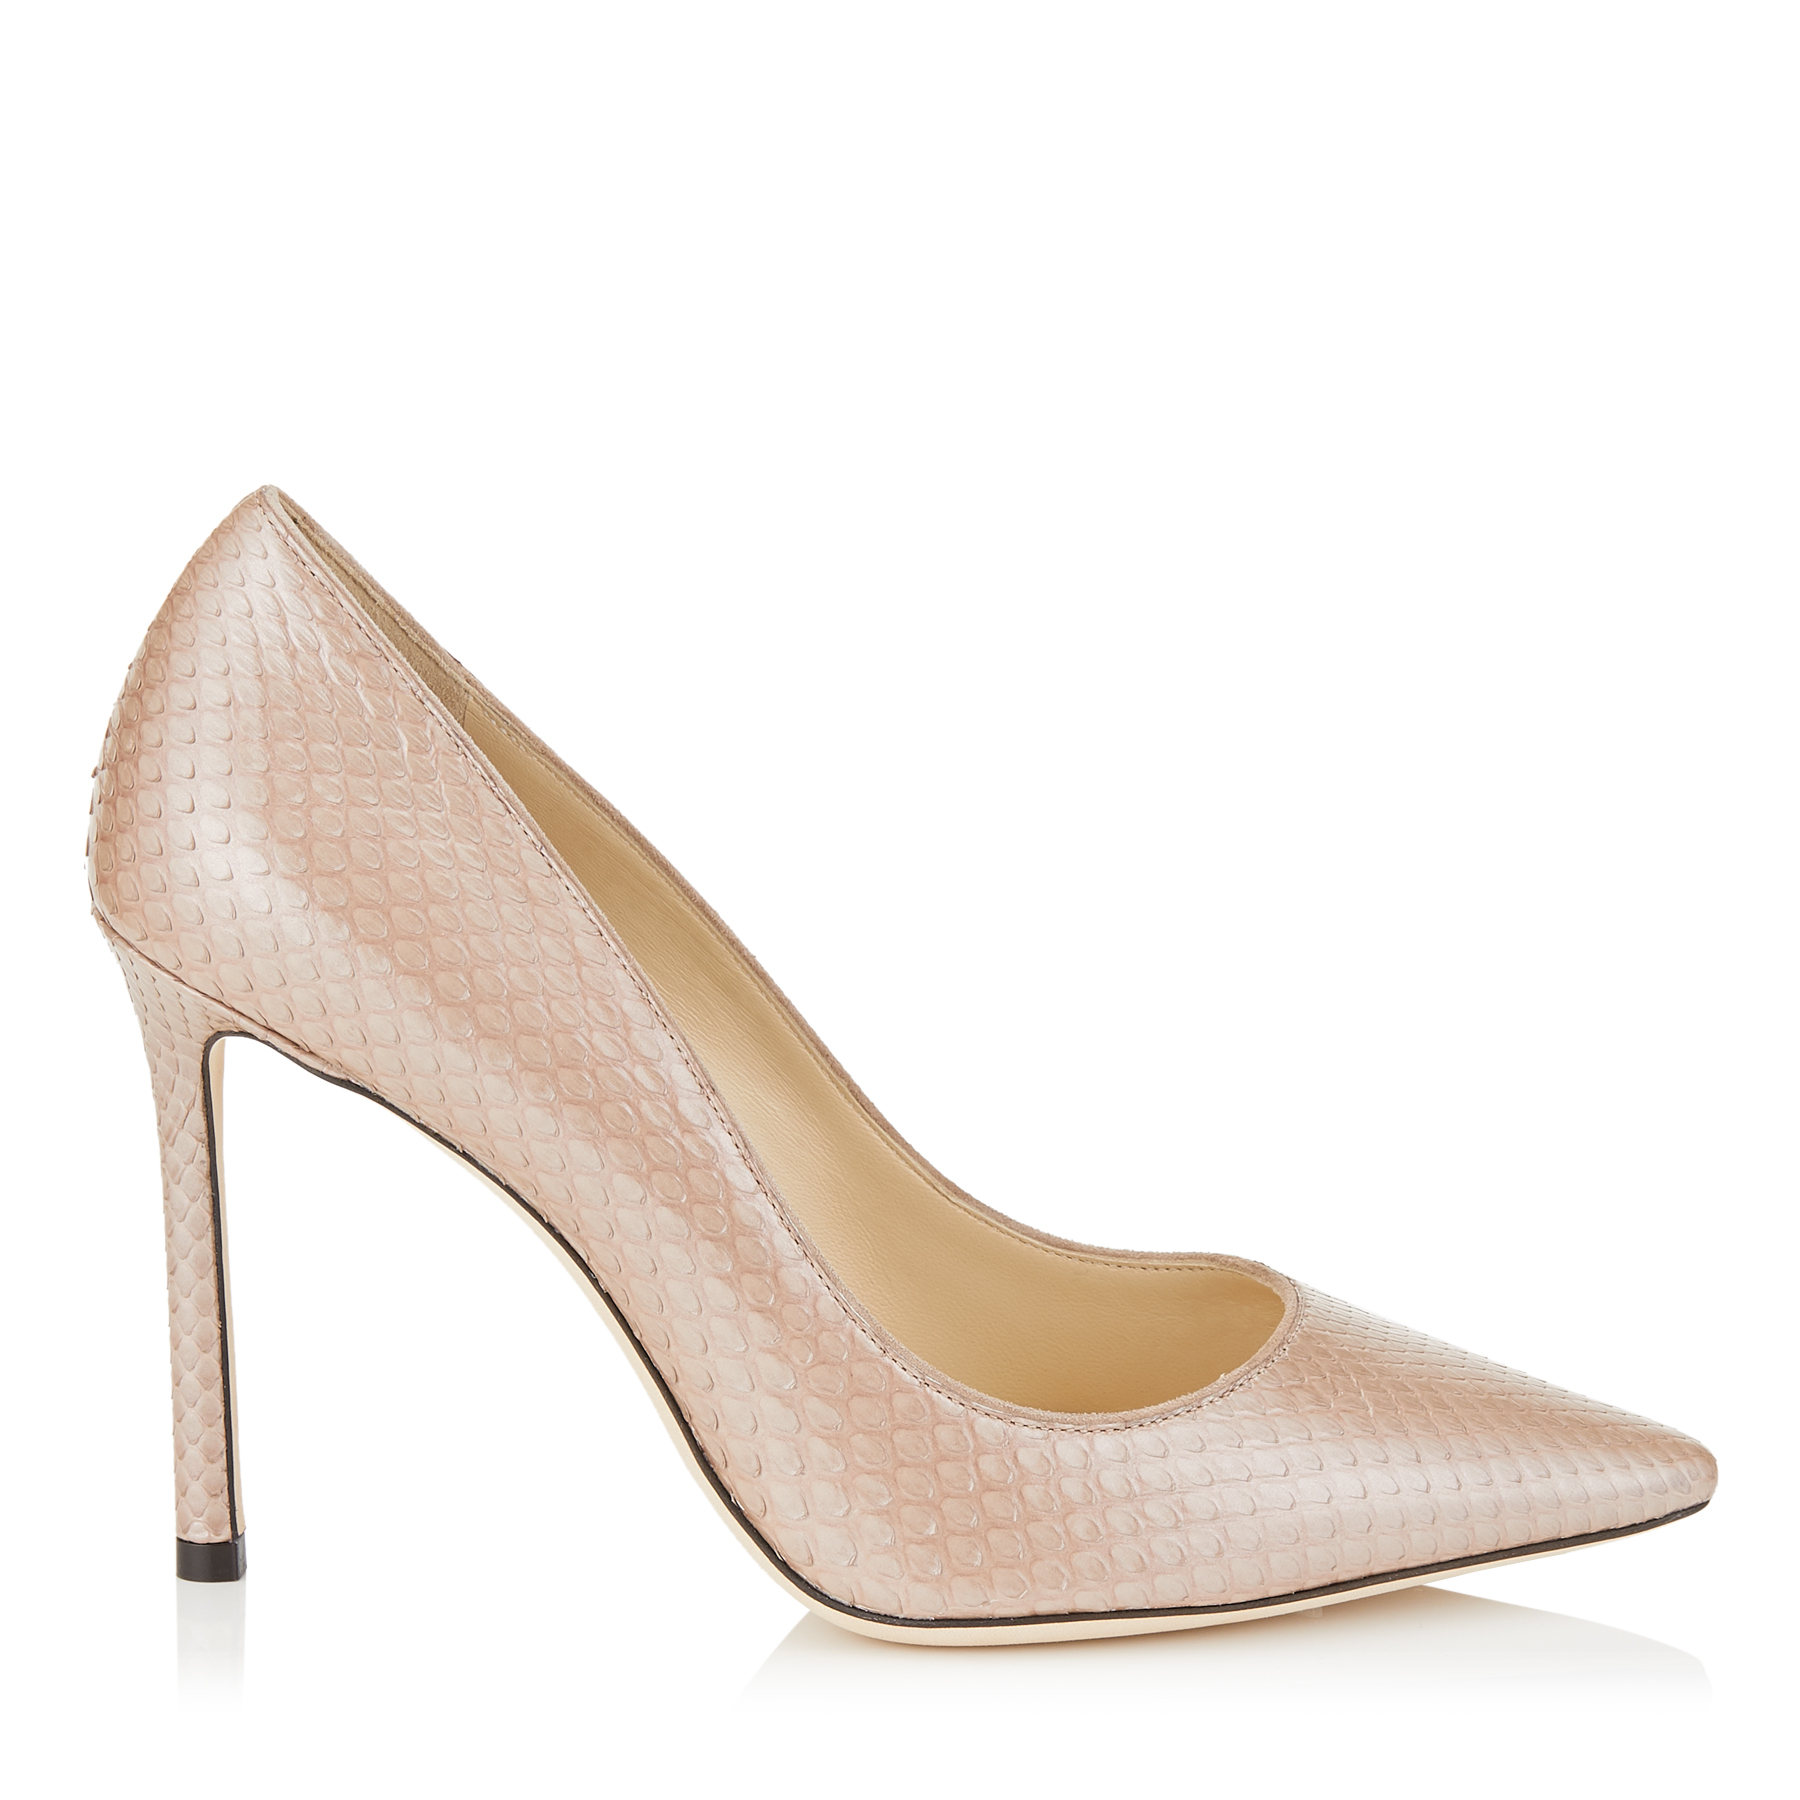 ROMY 100 Ballet Pink Glossy Pearlised Python Pointy Toe Pumps by Jimmy Choo